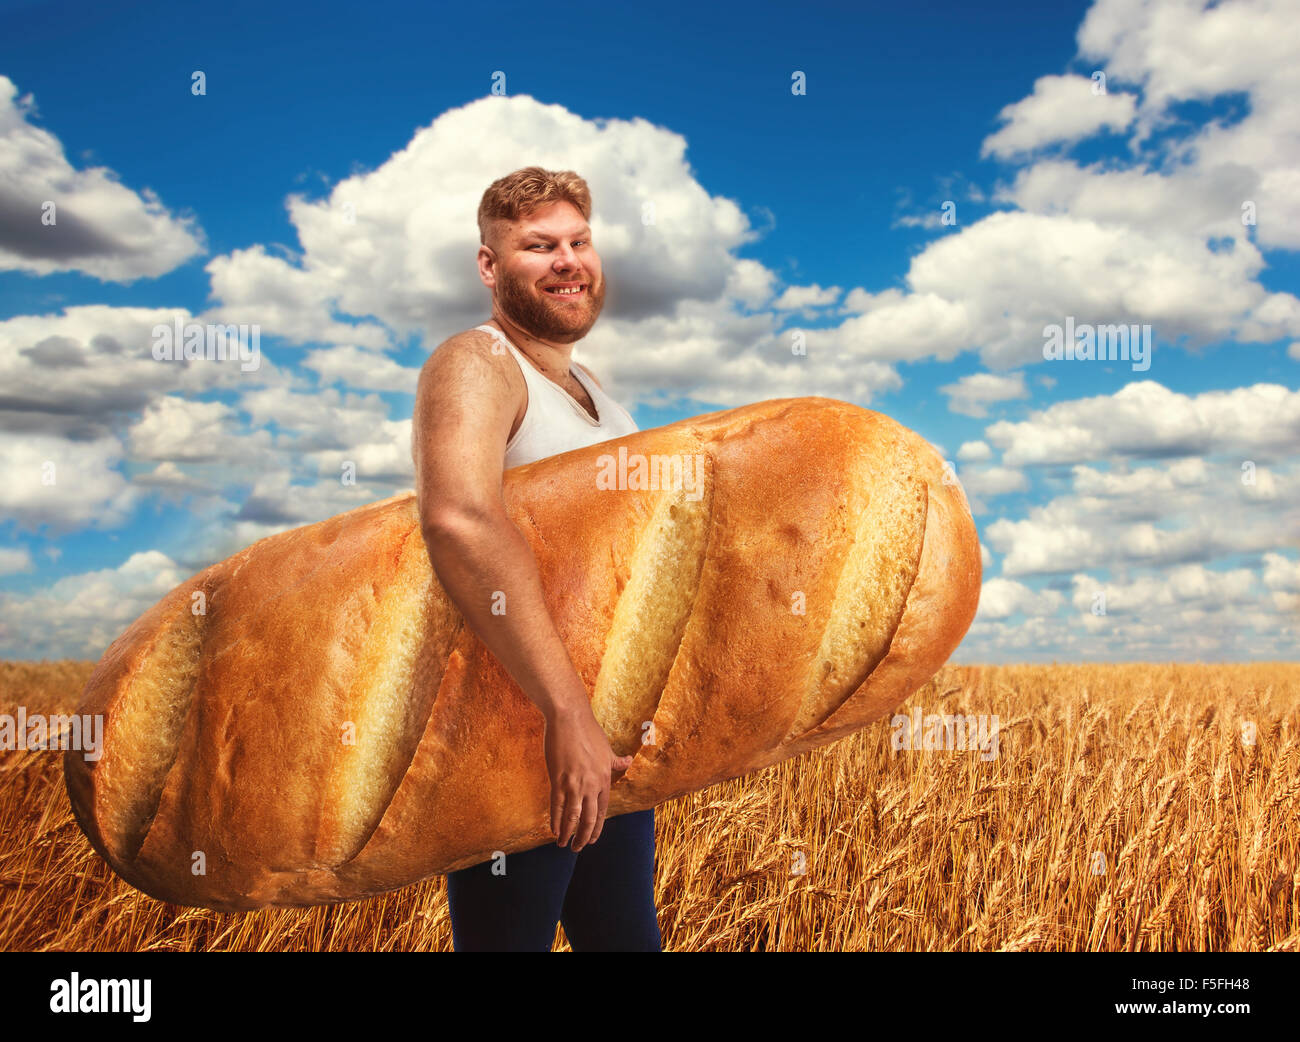 man holding a huge bread on field of wheat stock photo 89467848 alamy